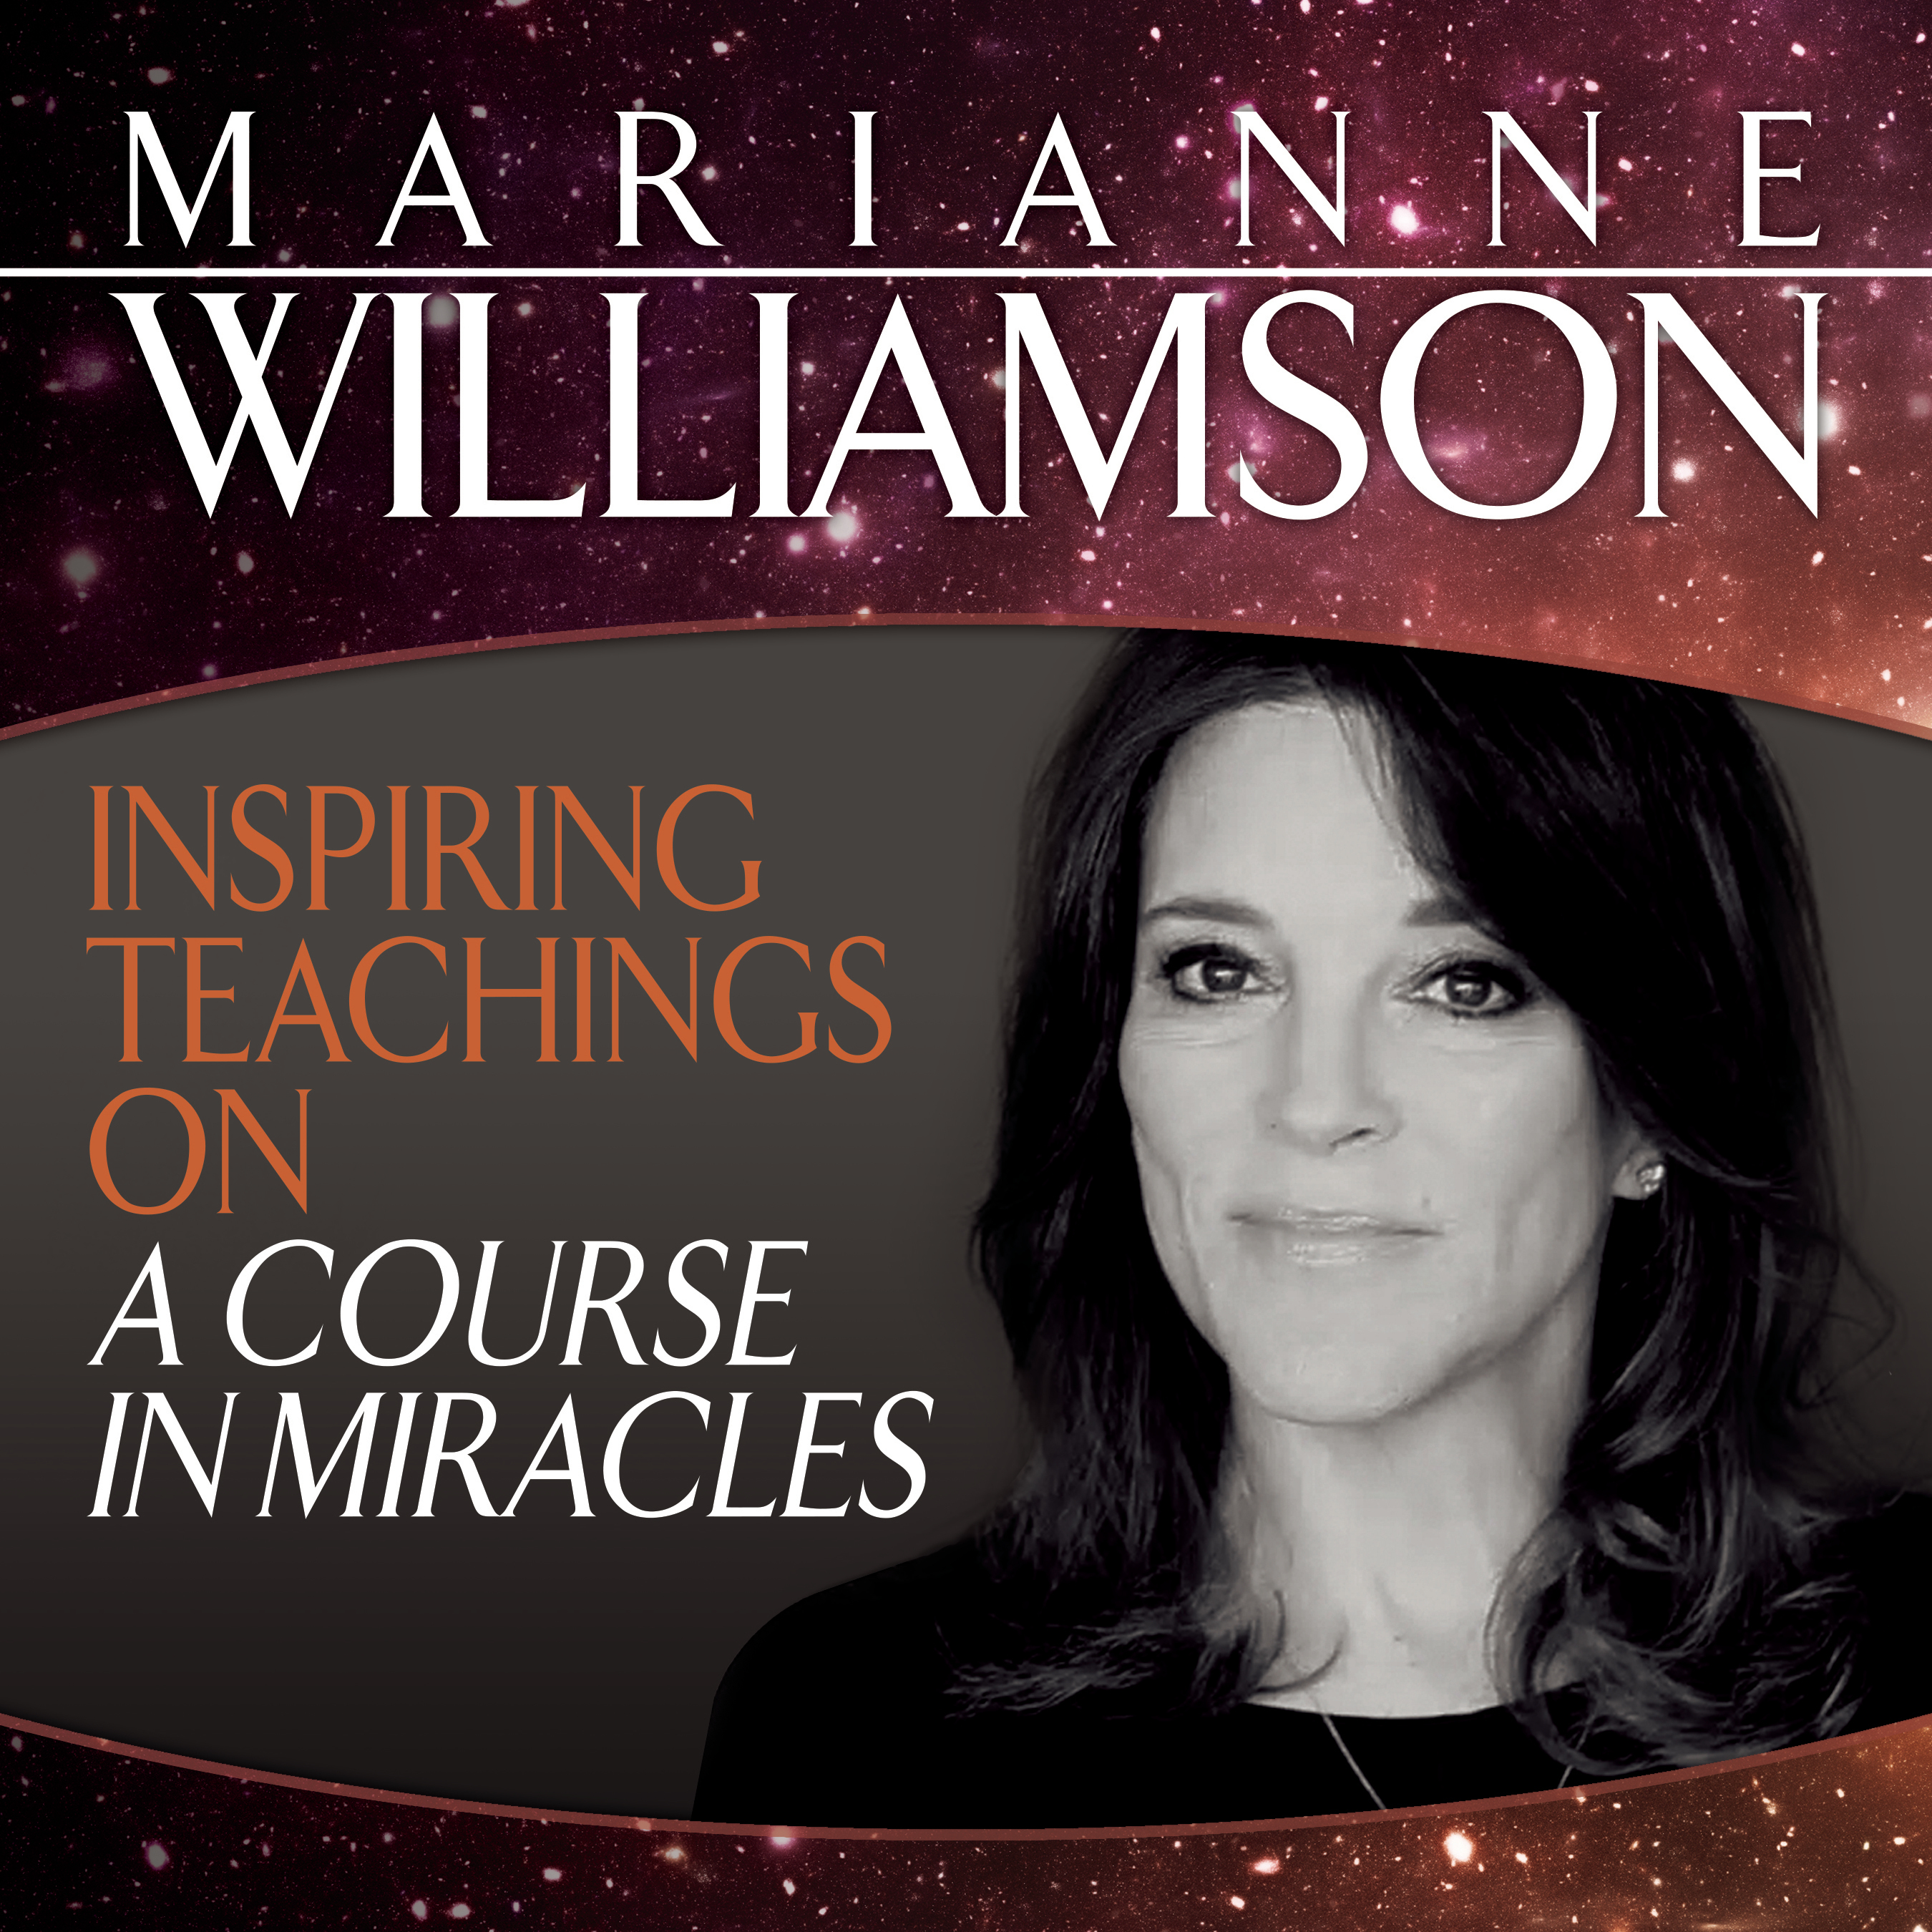 Inspiring teachings on a course in miracles audio book by marianne.